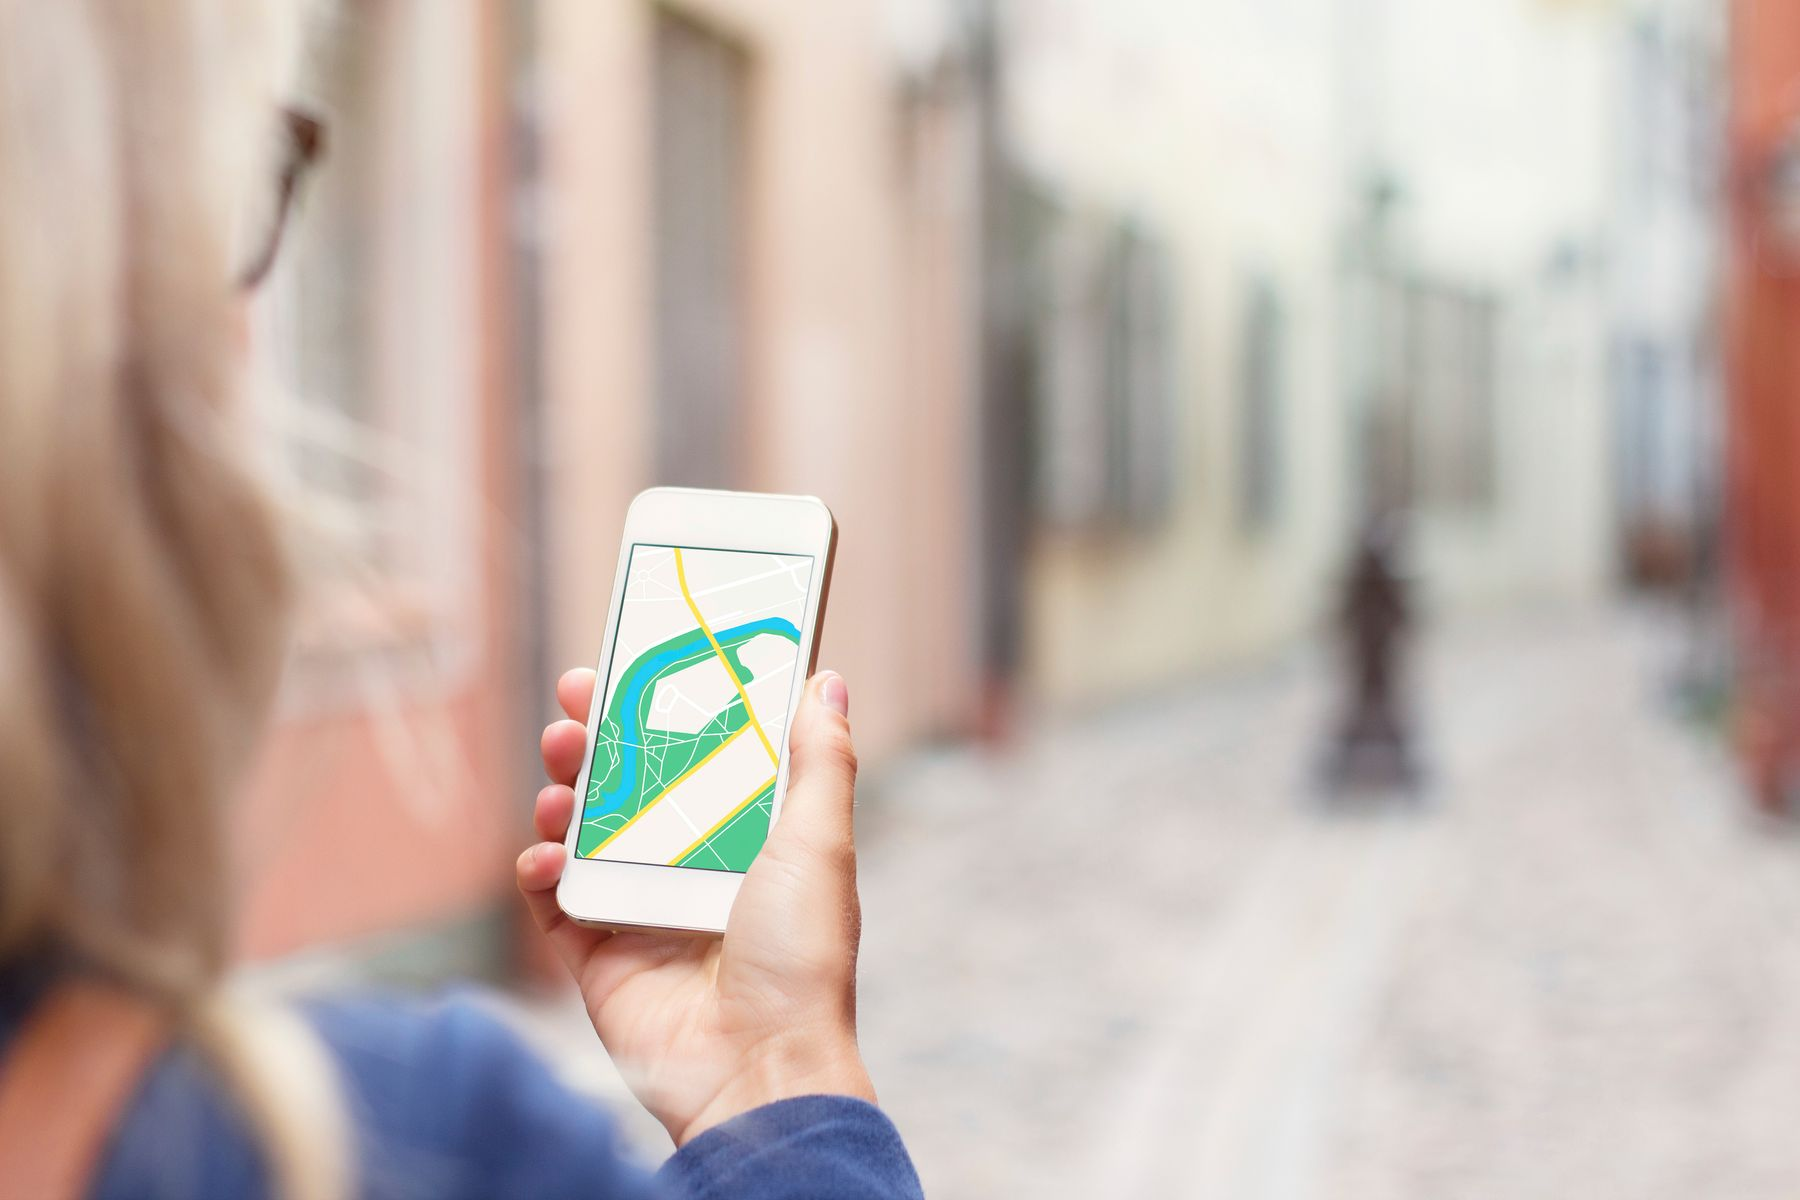 person navigating a street with an app on their smartphone